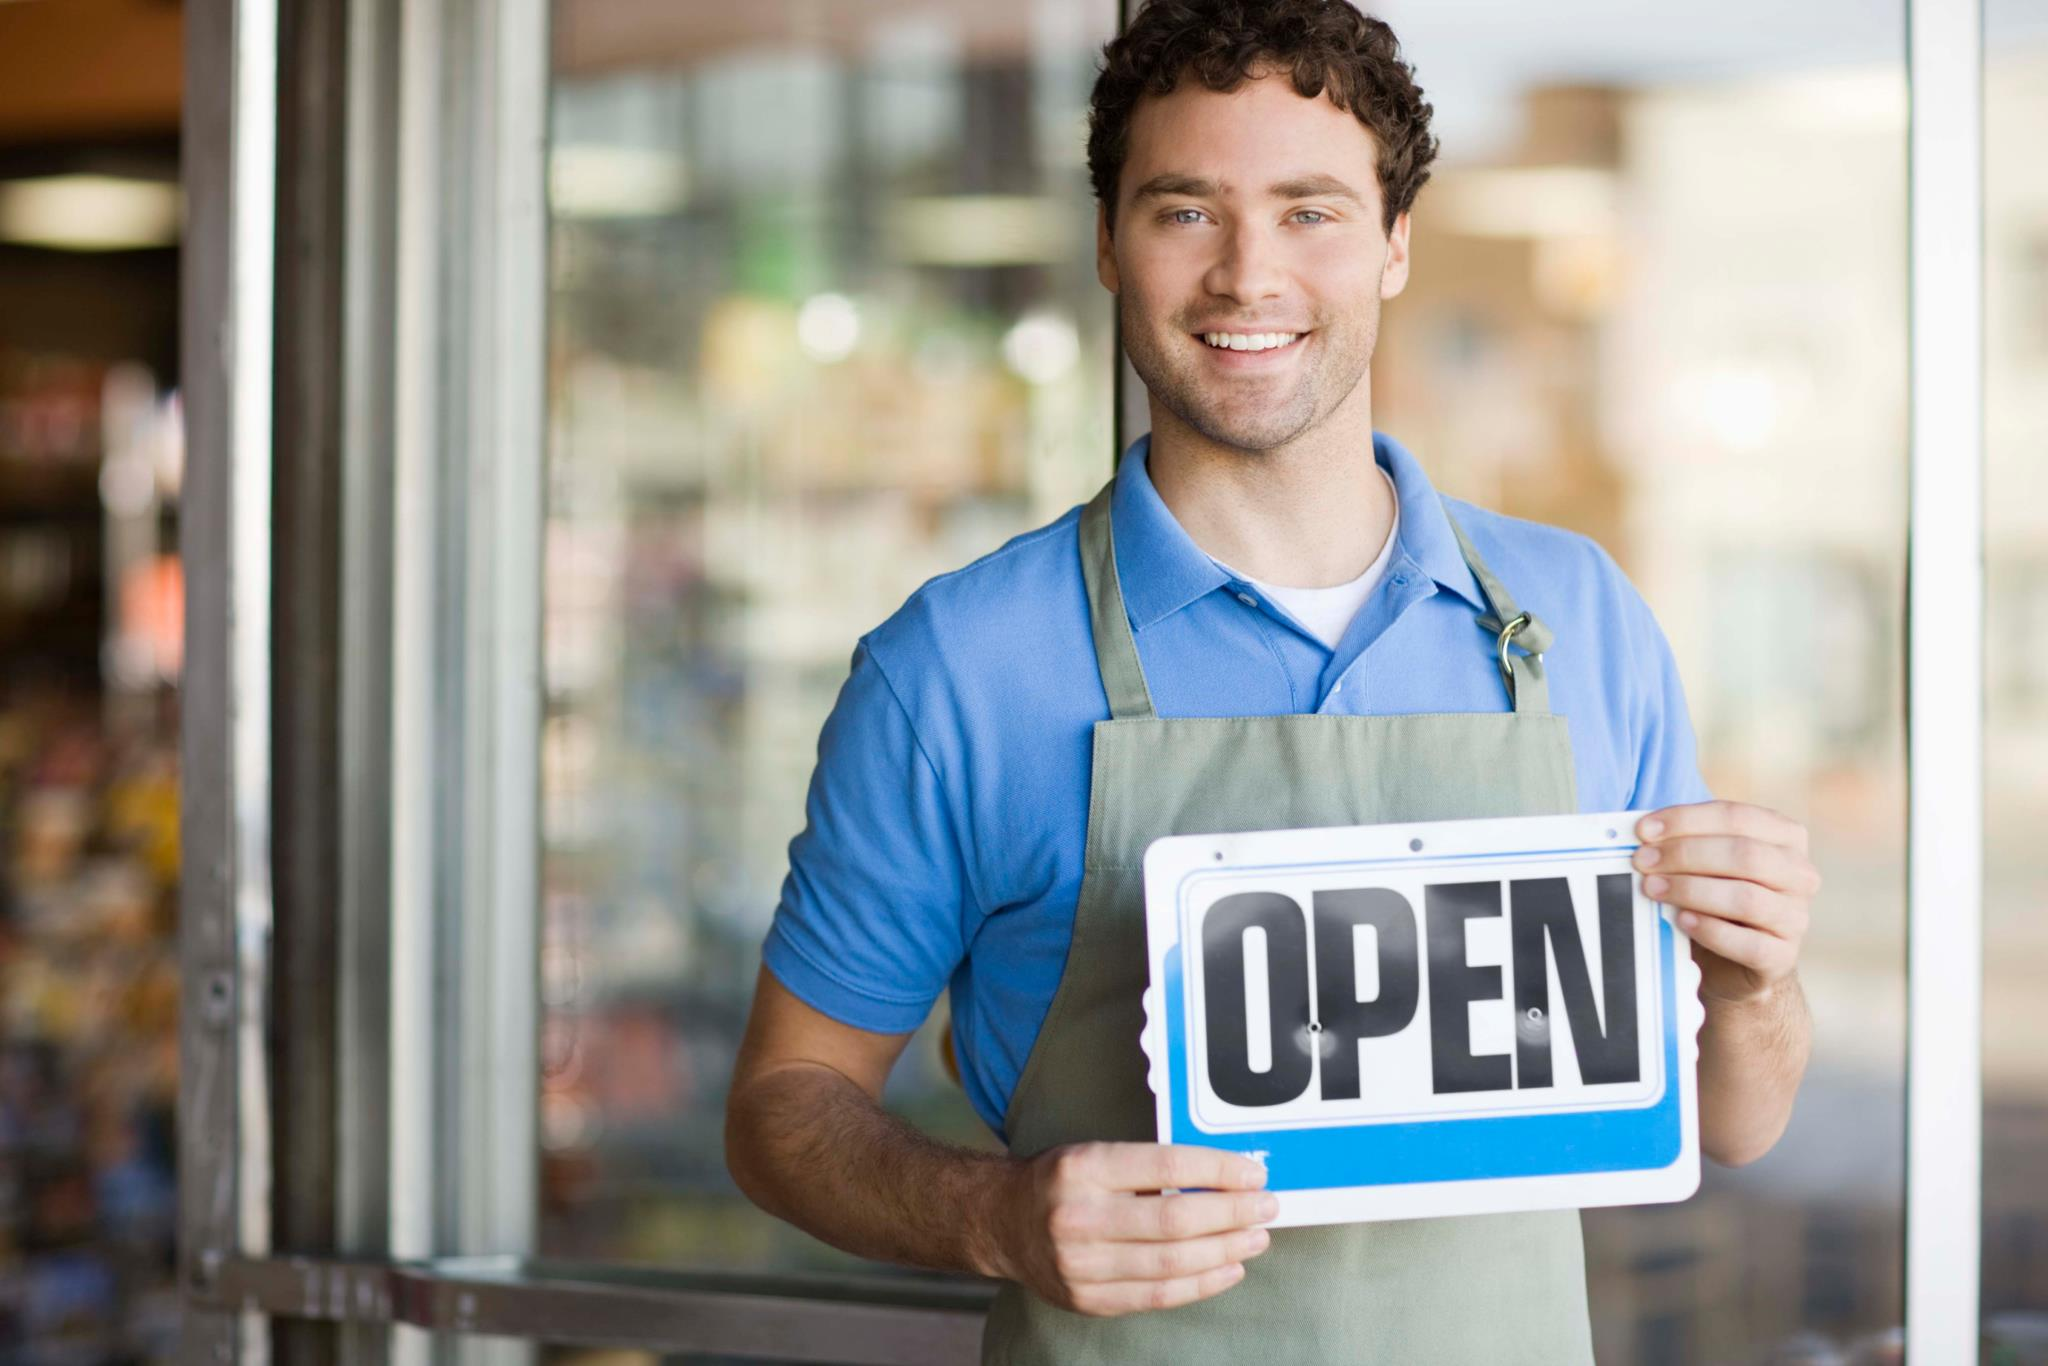 Small business support 'hazy but positive'